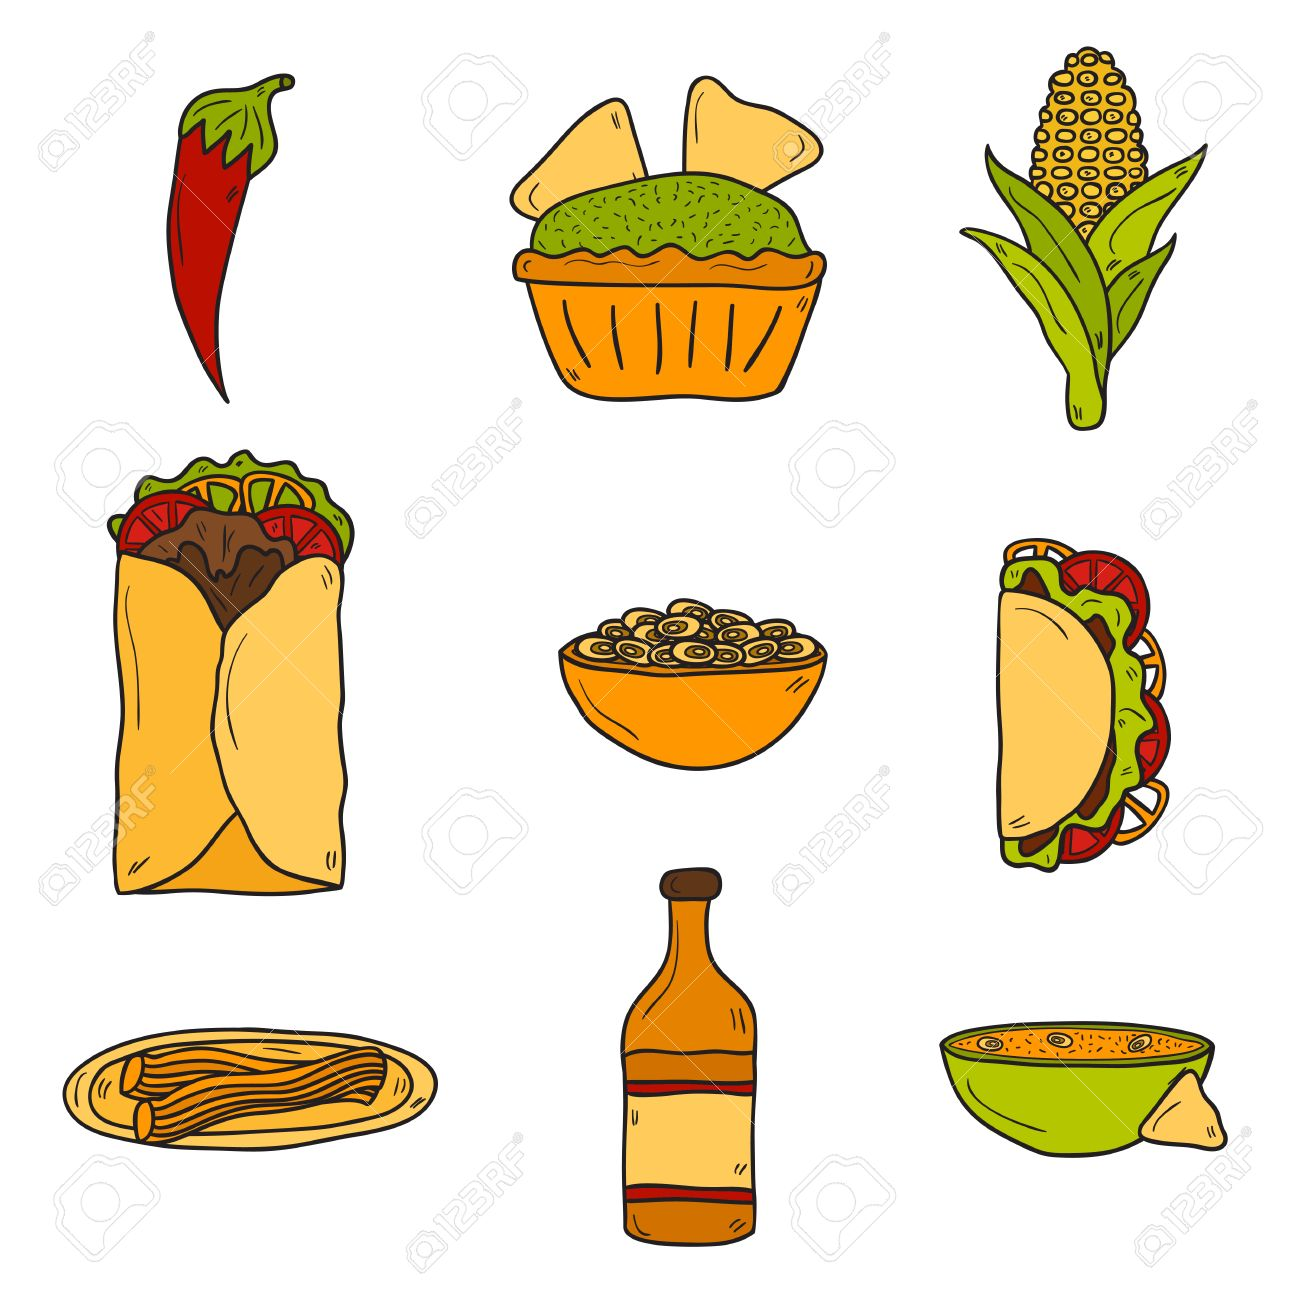 set of cute cartoon hand drawn icons on mexican food theme chili rh 123rf com cartoon american football players Cute Cartoon Mexican Food